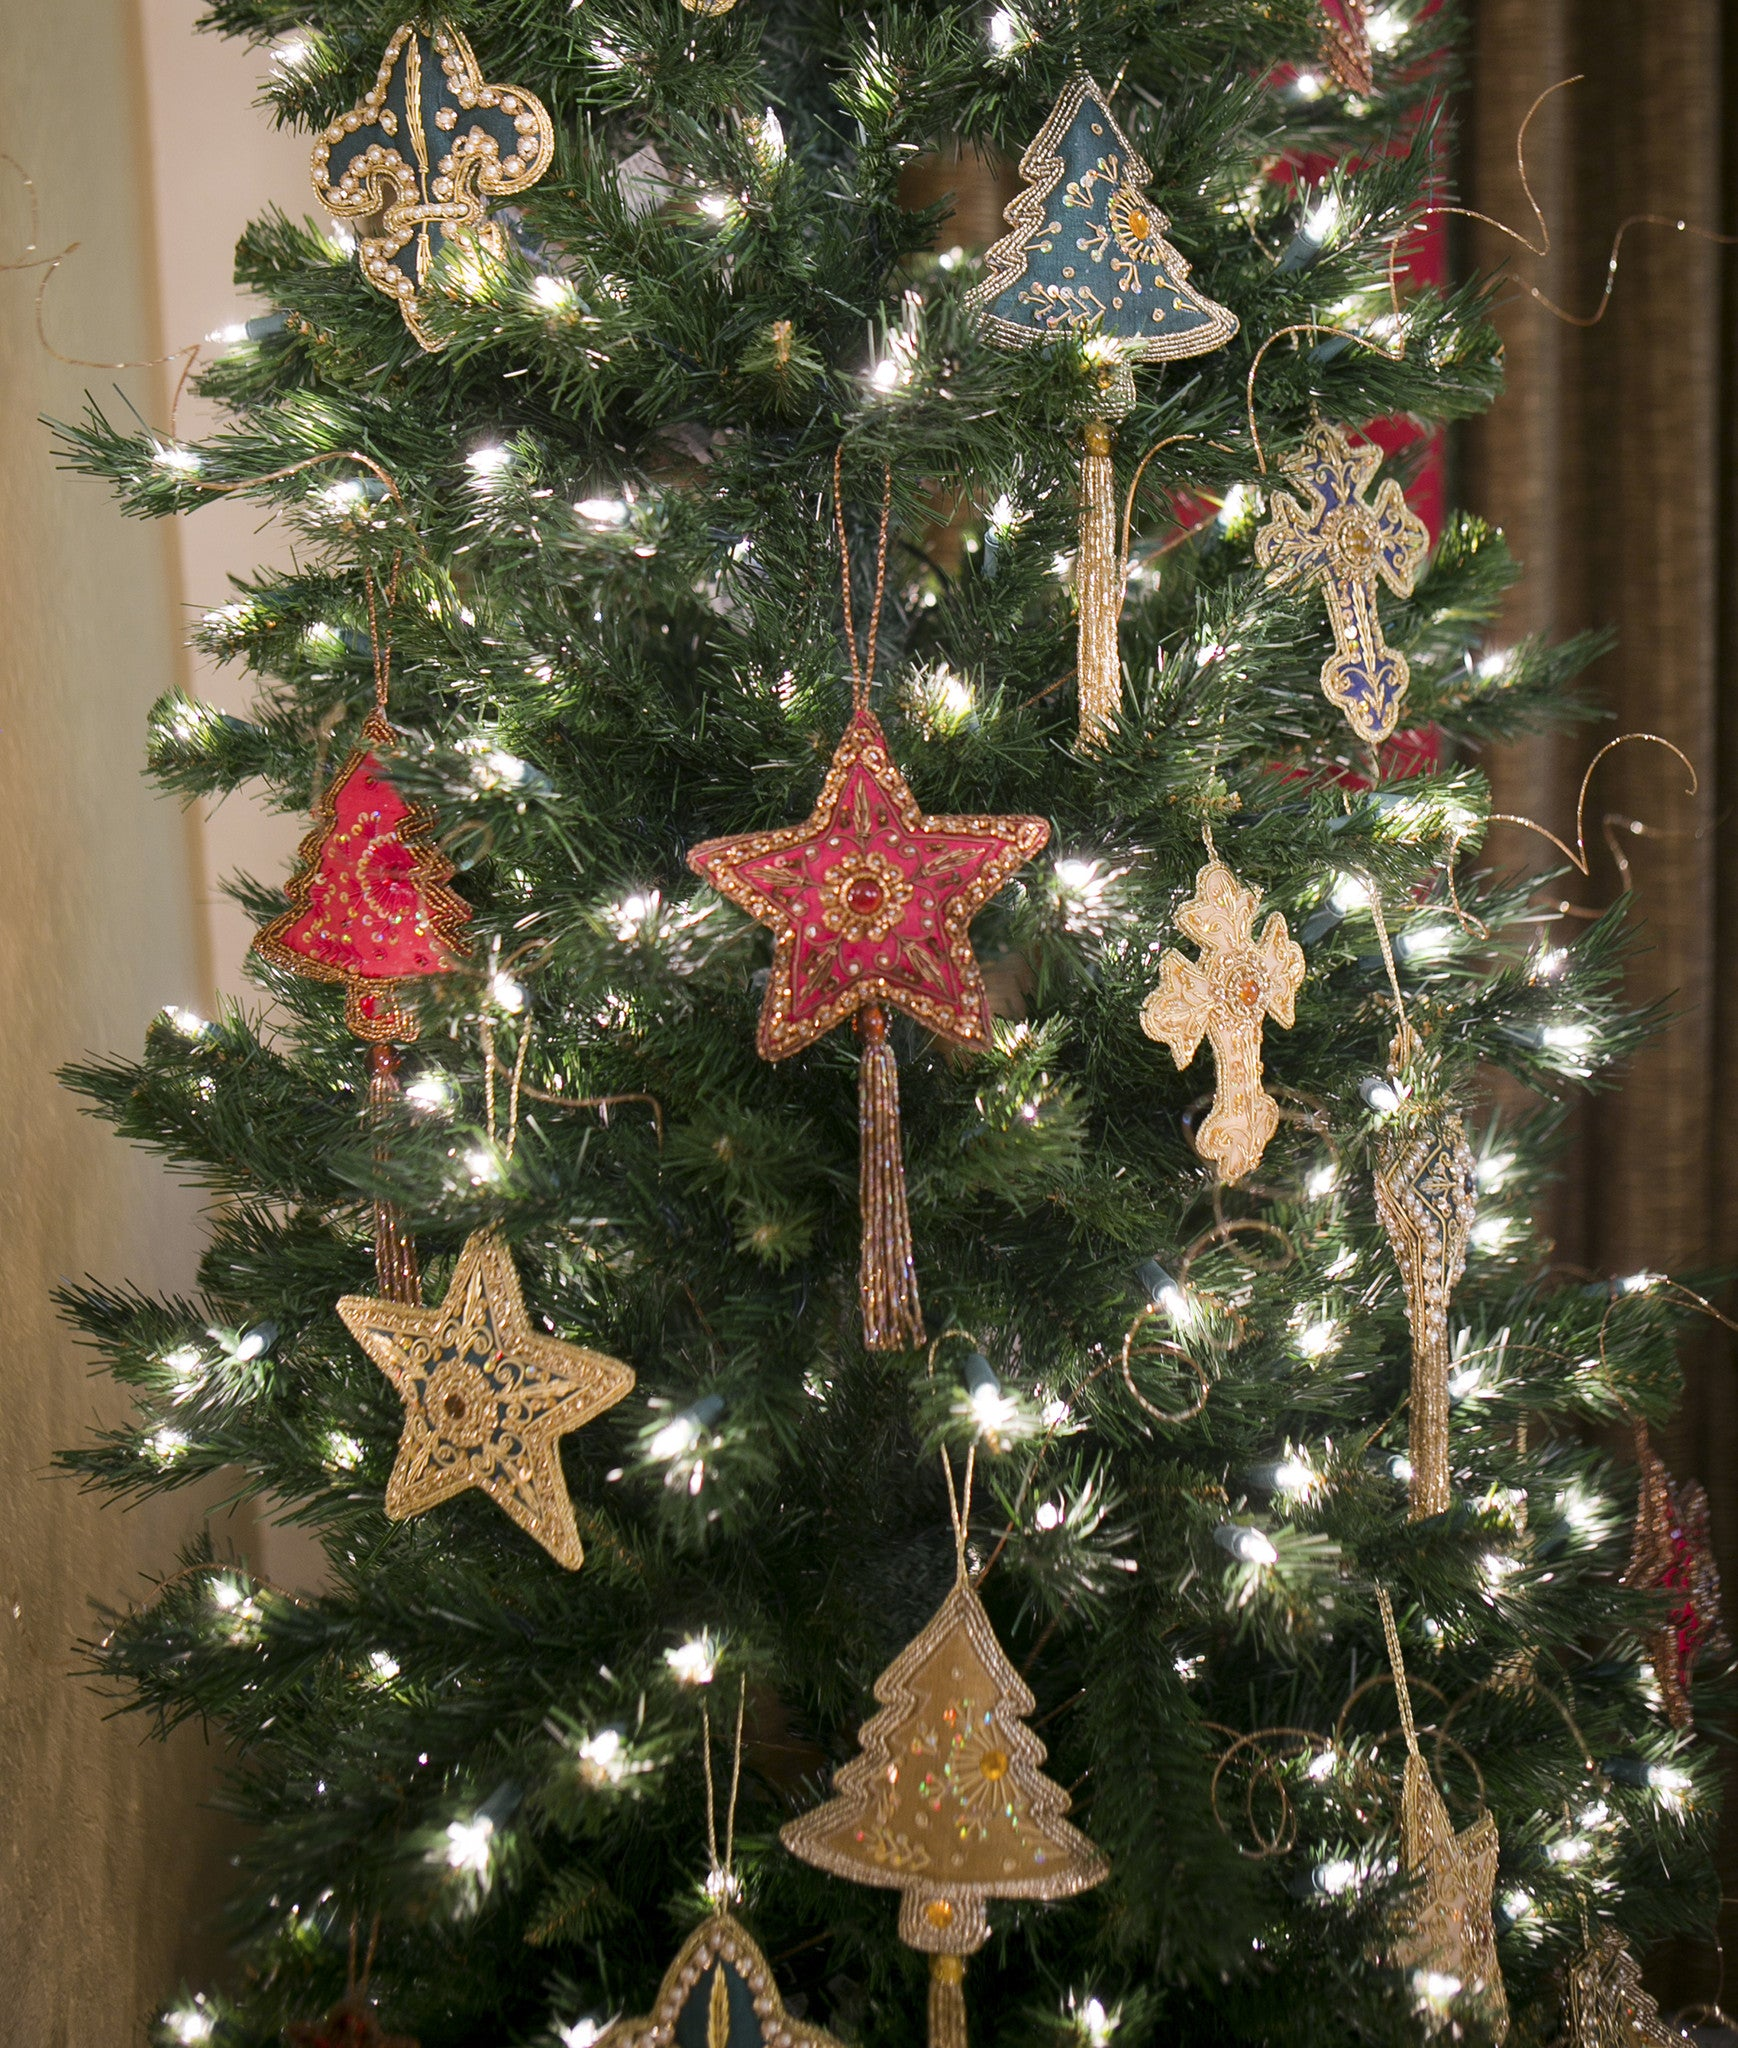 Christmas Tree In India.Hand Beaded Christmas Ornament From India Tree Lionheart